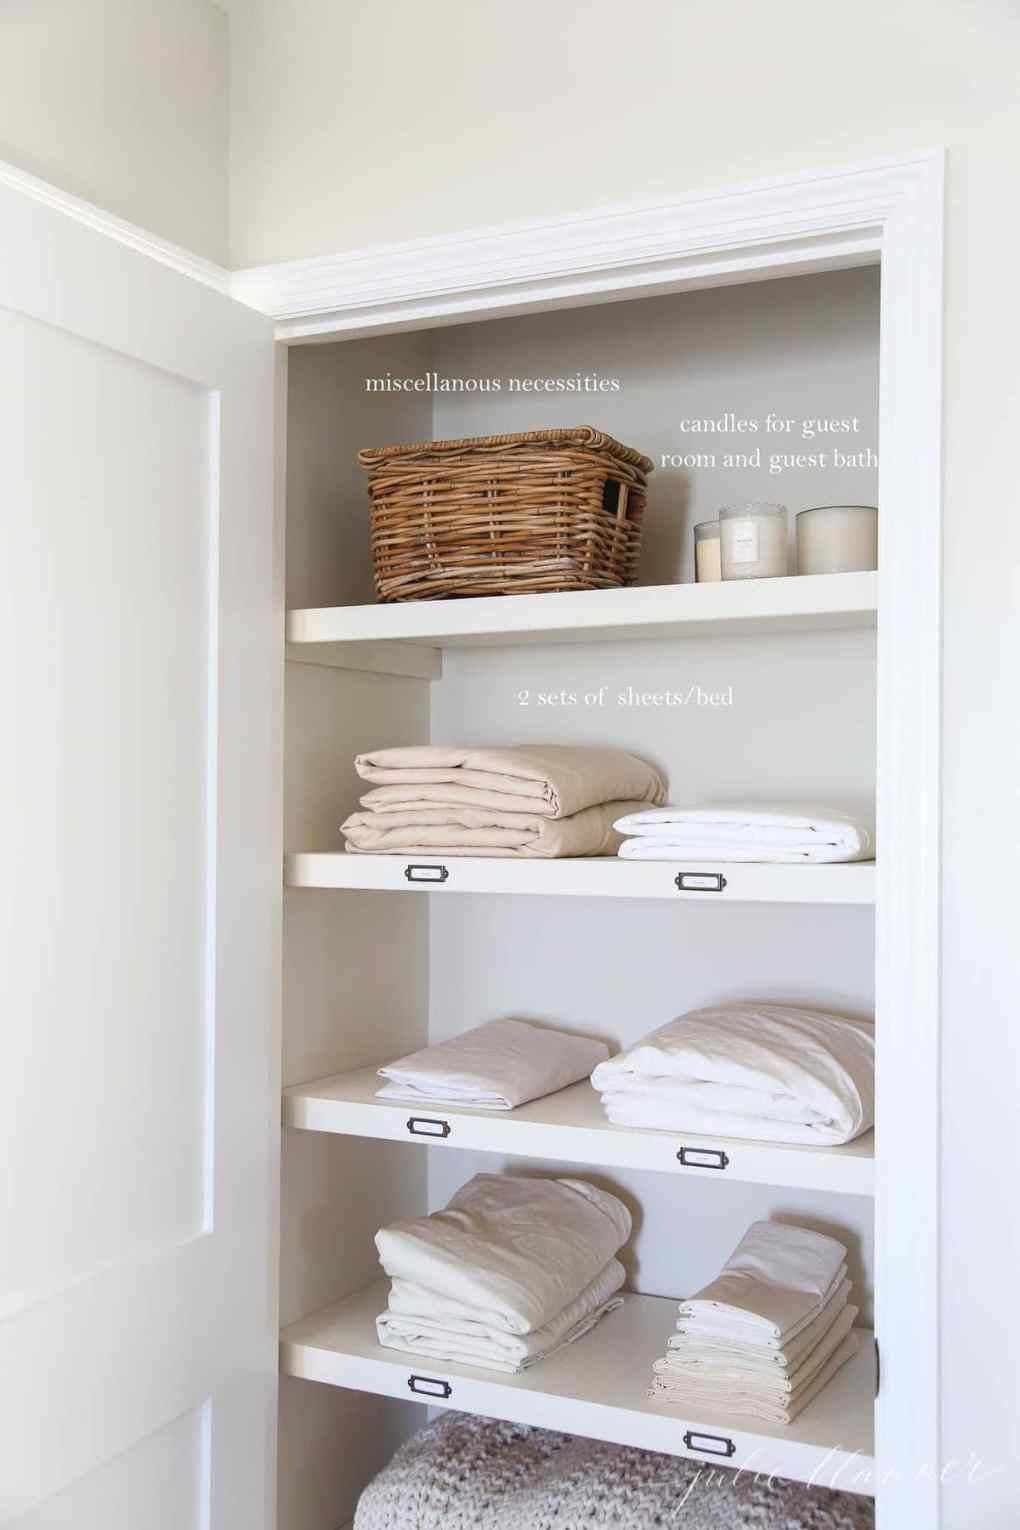 A linen closet stacked with sheets, baskets, etc, with white text overlay describing the items individually